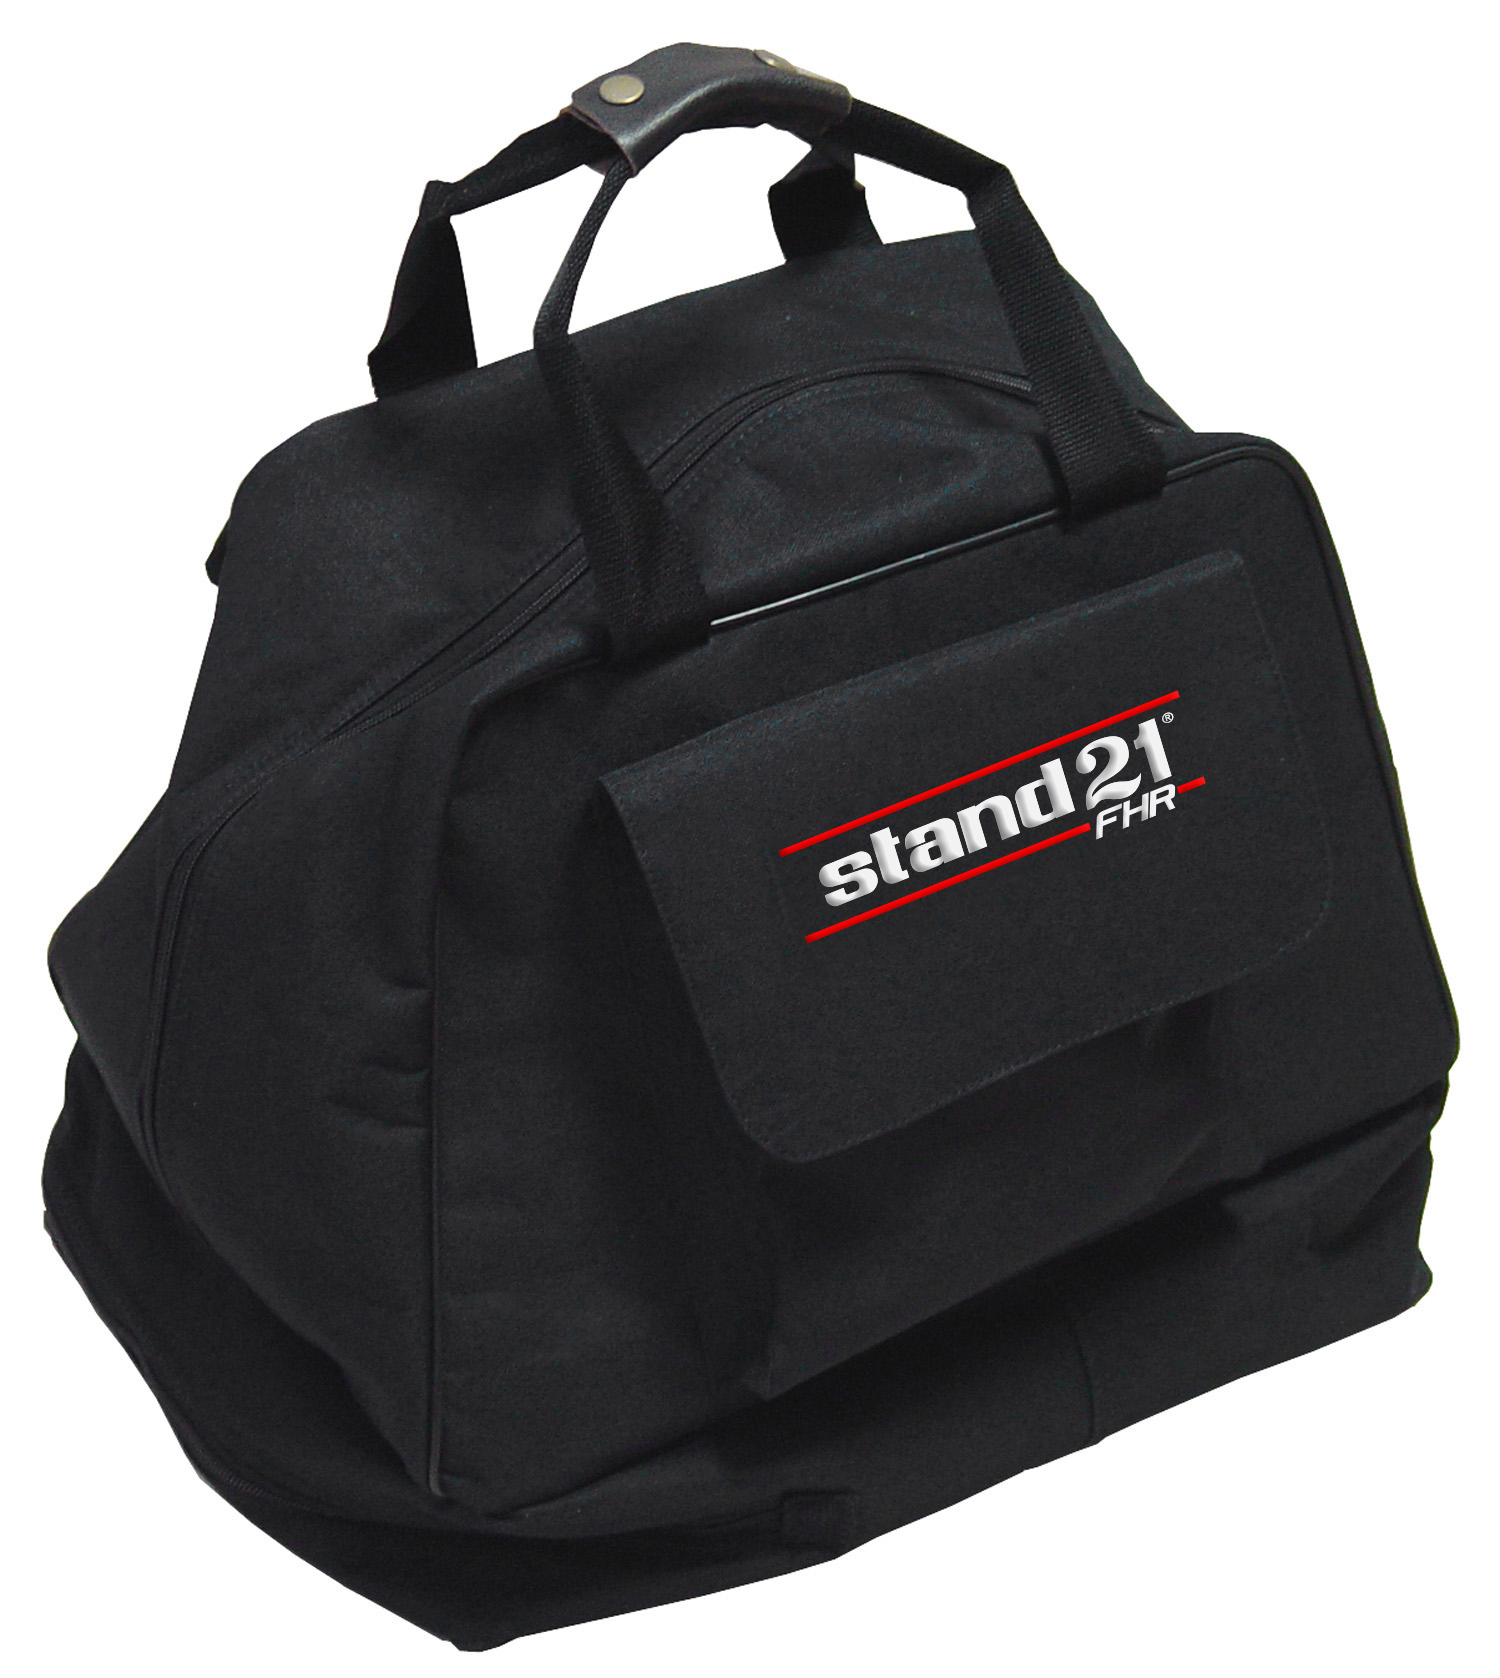 Helmet/FHR carrying bag